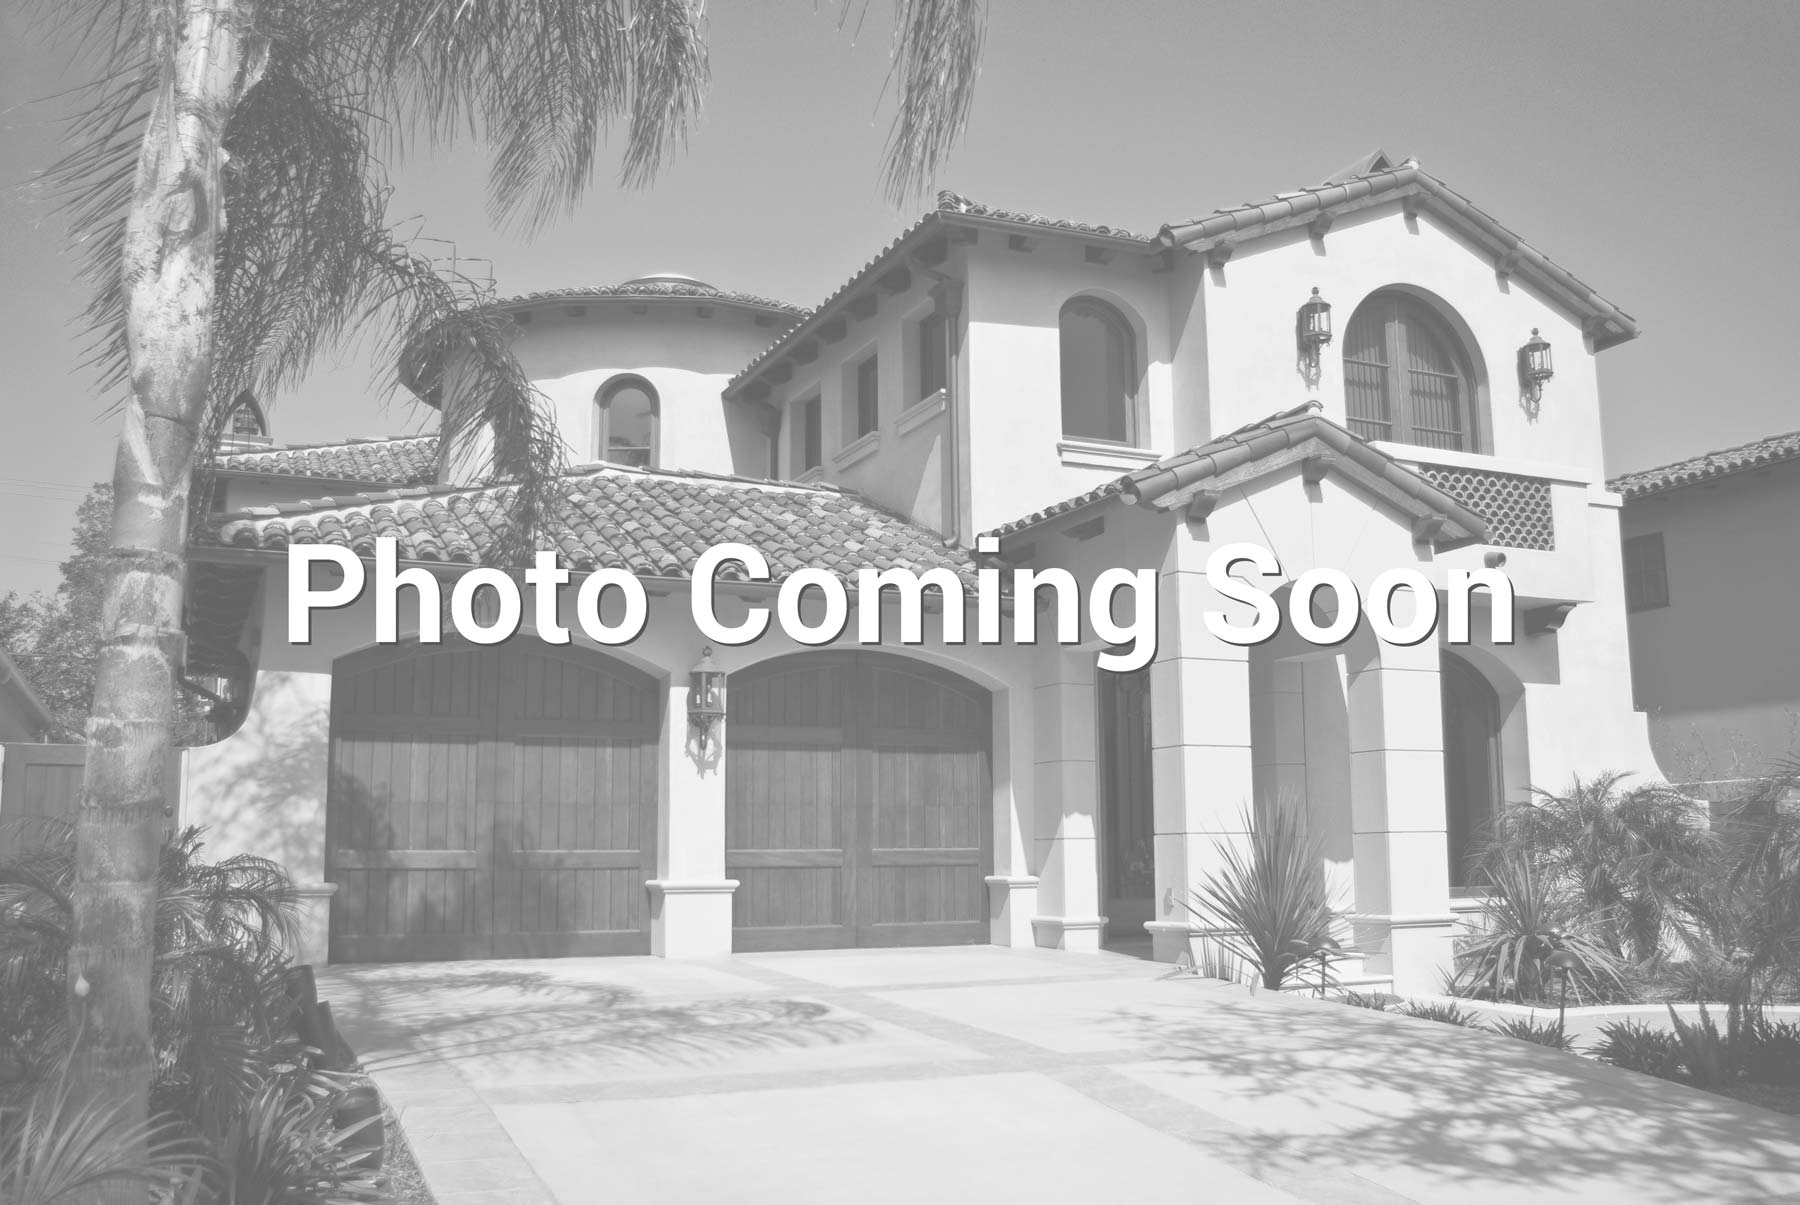 $455,000 - 5Br/4Ba - Home for Sale in Westwing Mountain Phase 2 Parcel 29, Peoria